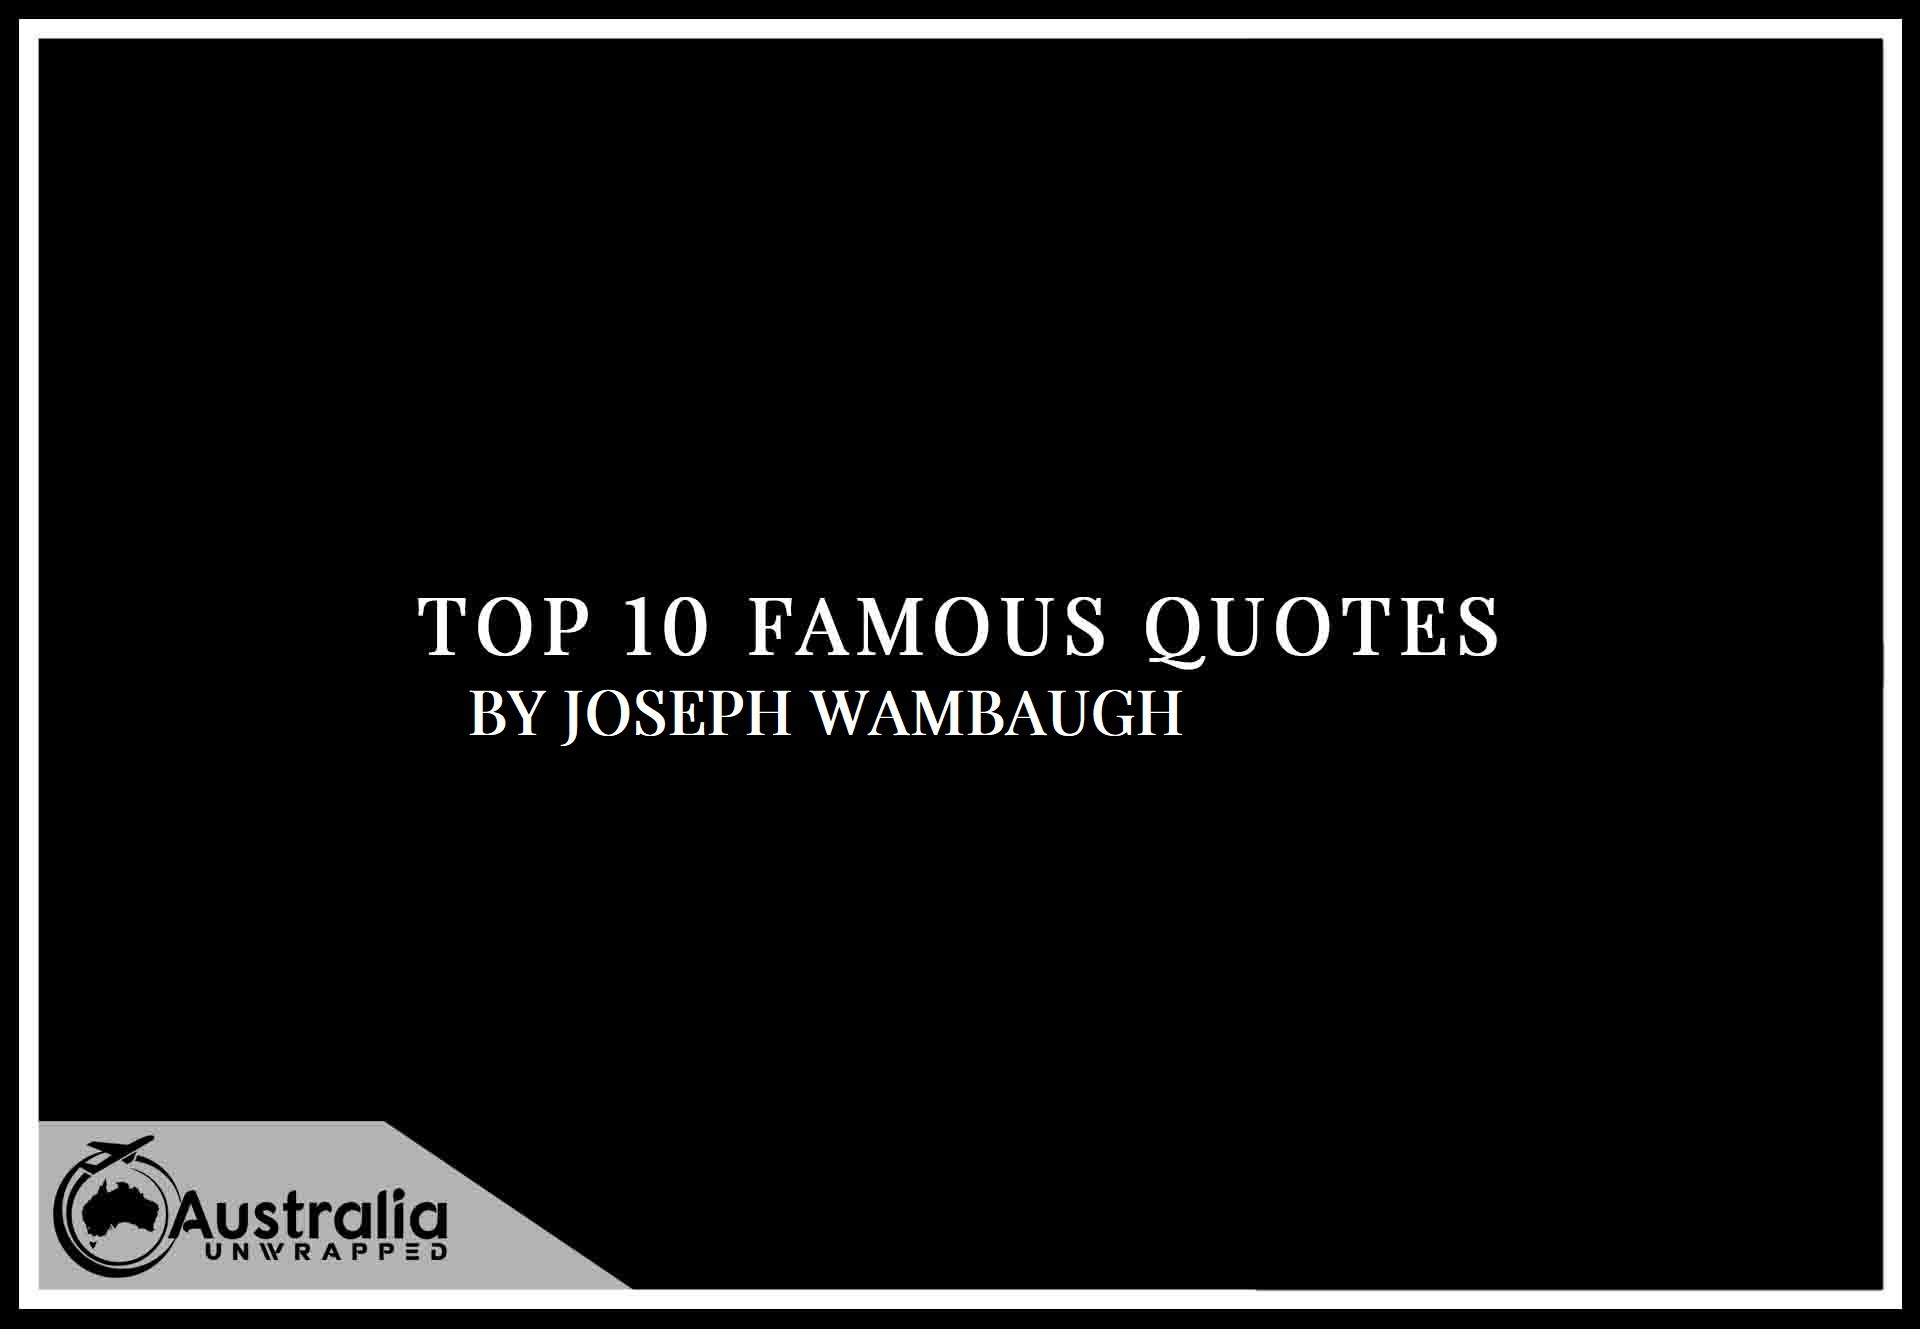 Top 10 Famous Quotes by Author Joseph Wambaugh